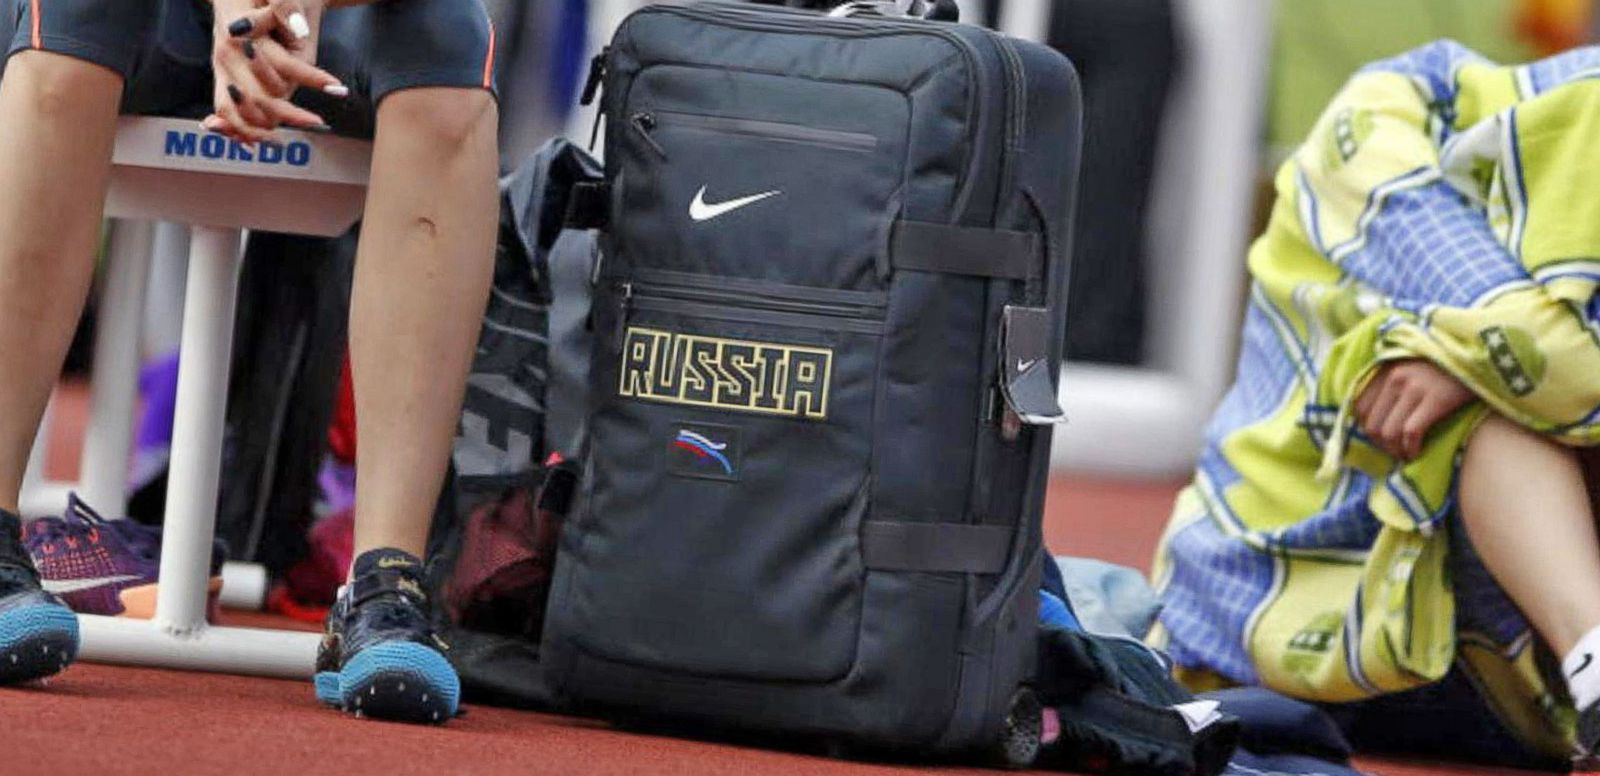 VIDEO: Olympic Committee Meets to Decide if Russia Should be Banned